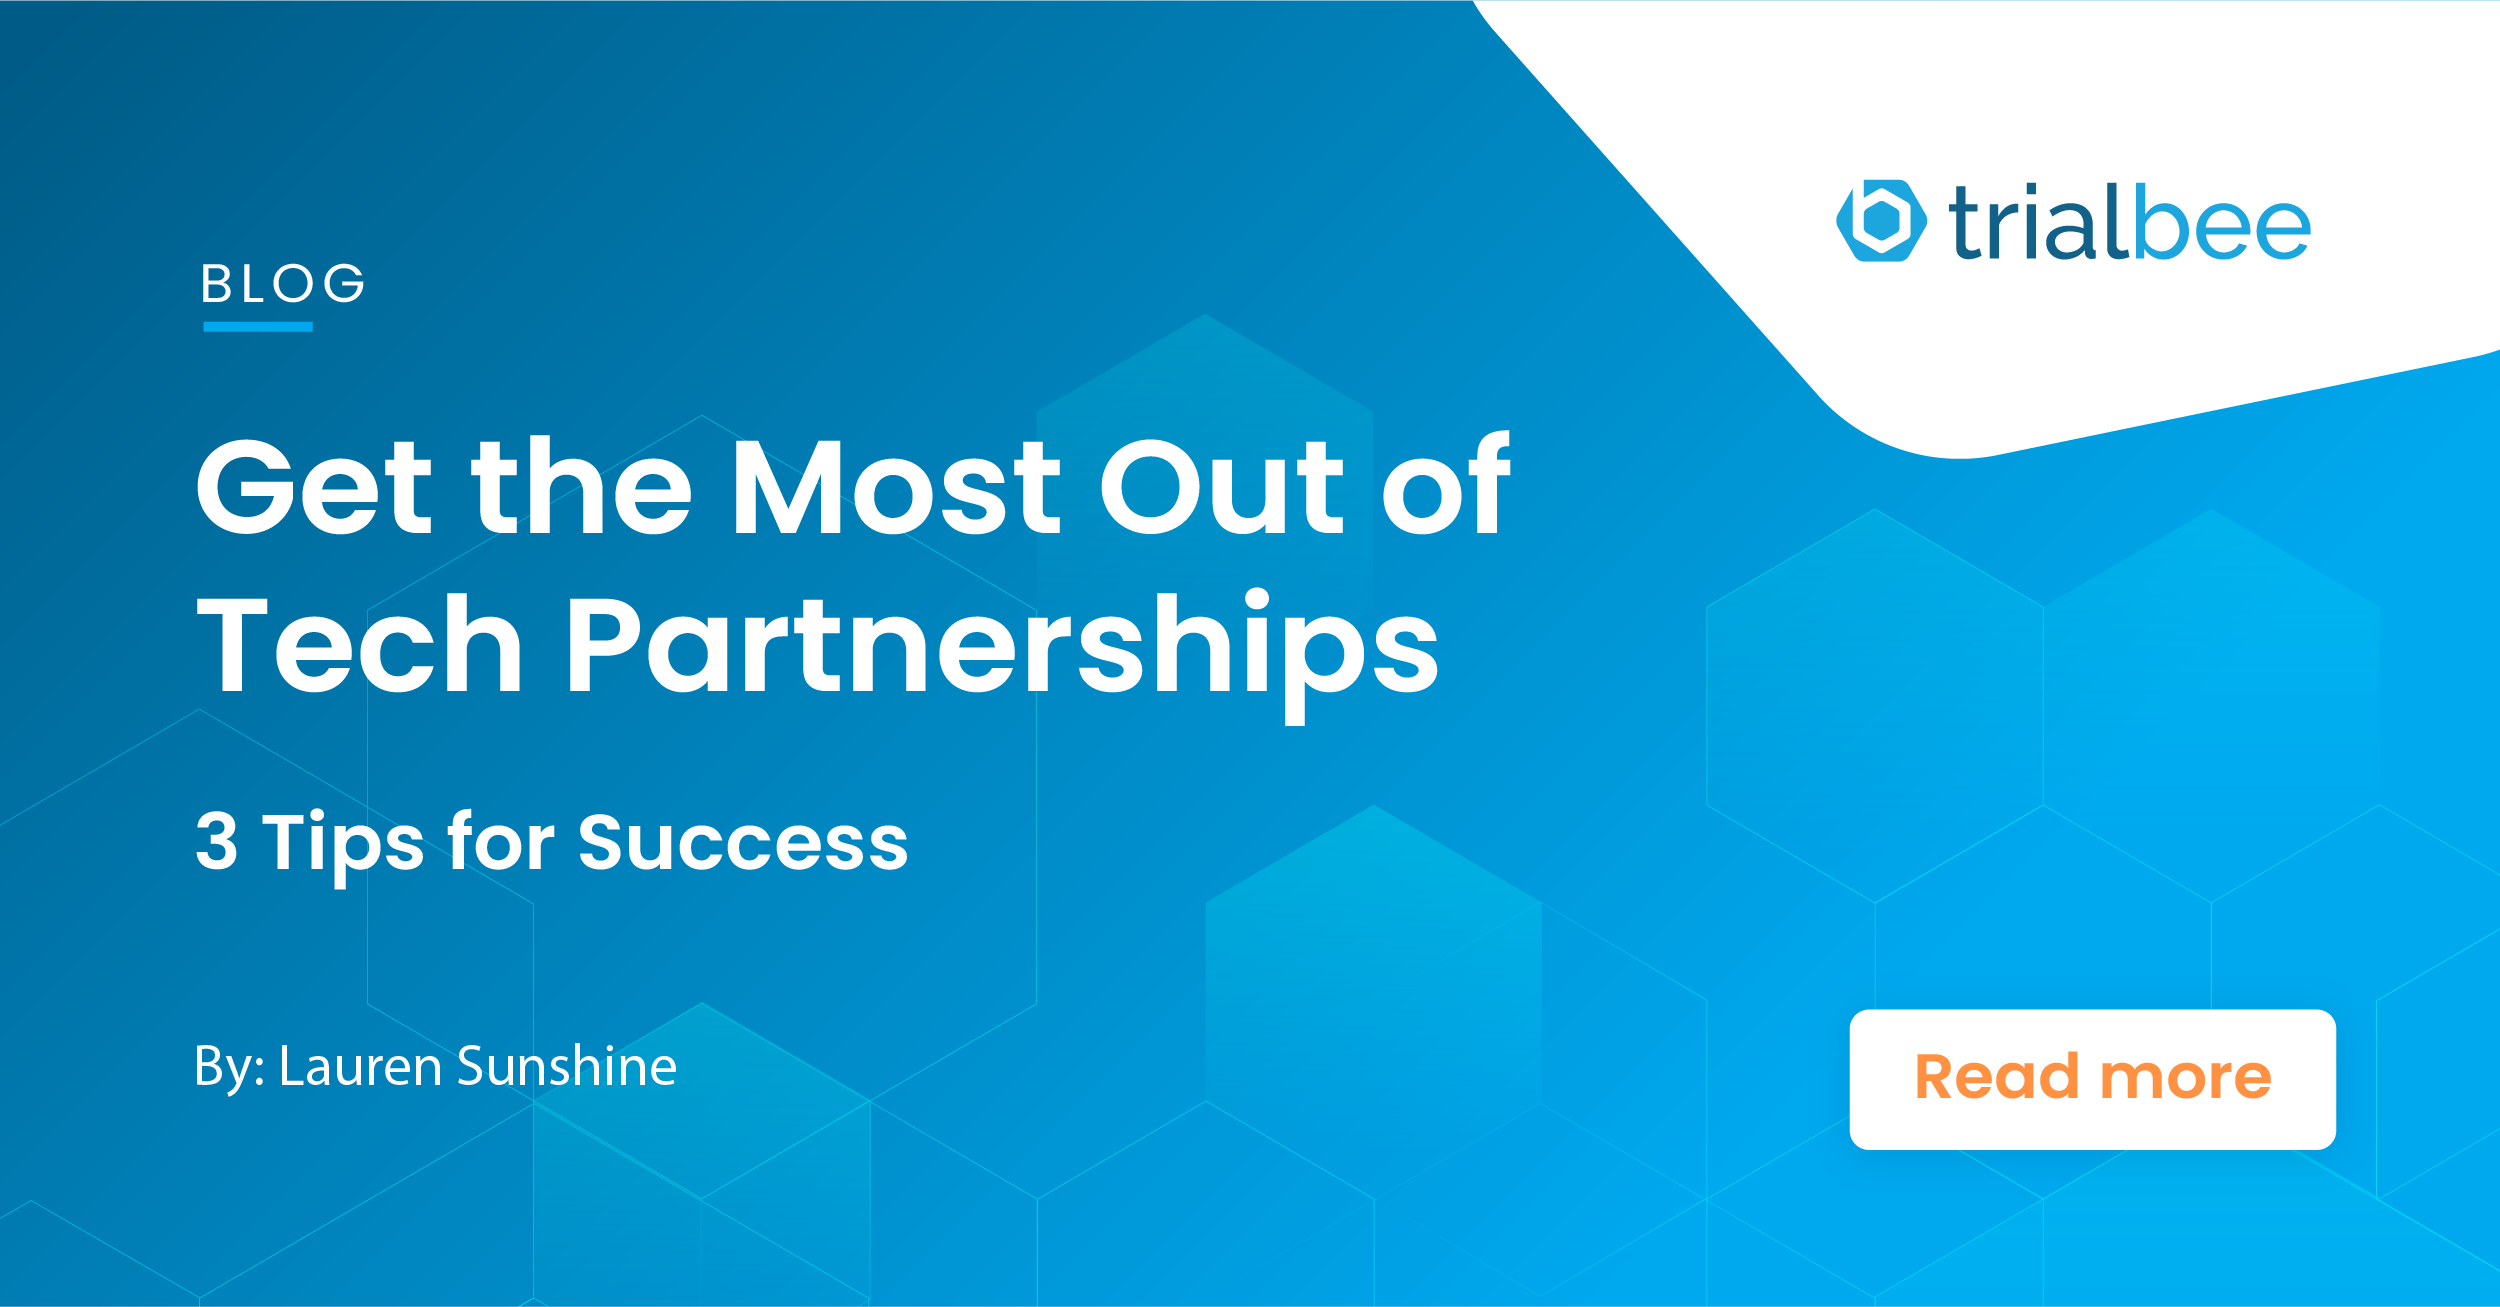 Get the Most Out of Tech Partnerships – 3 Tips for Success